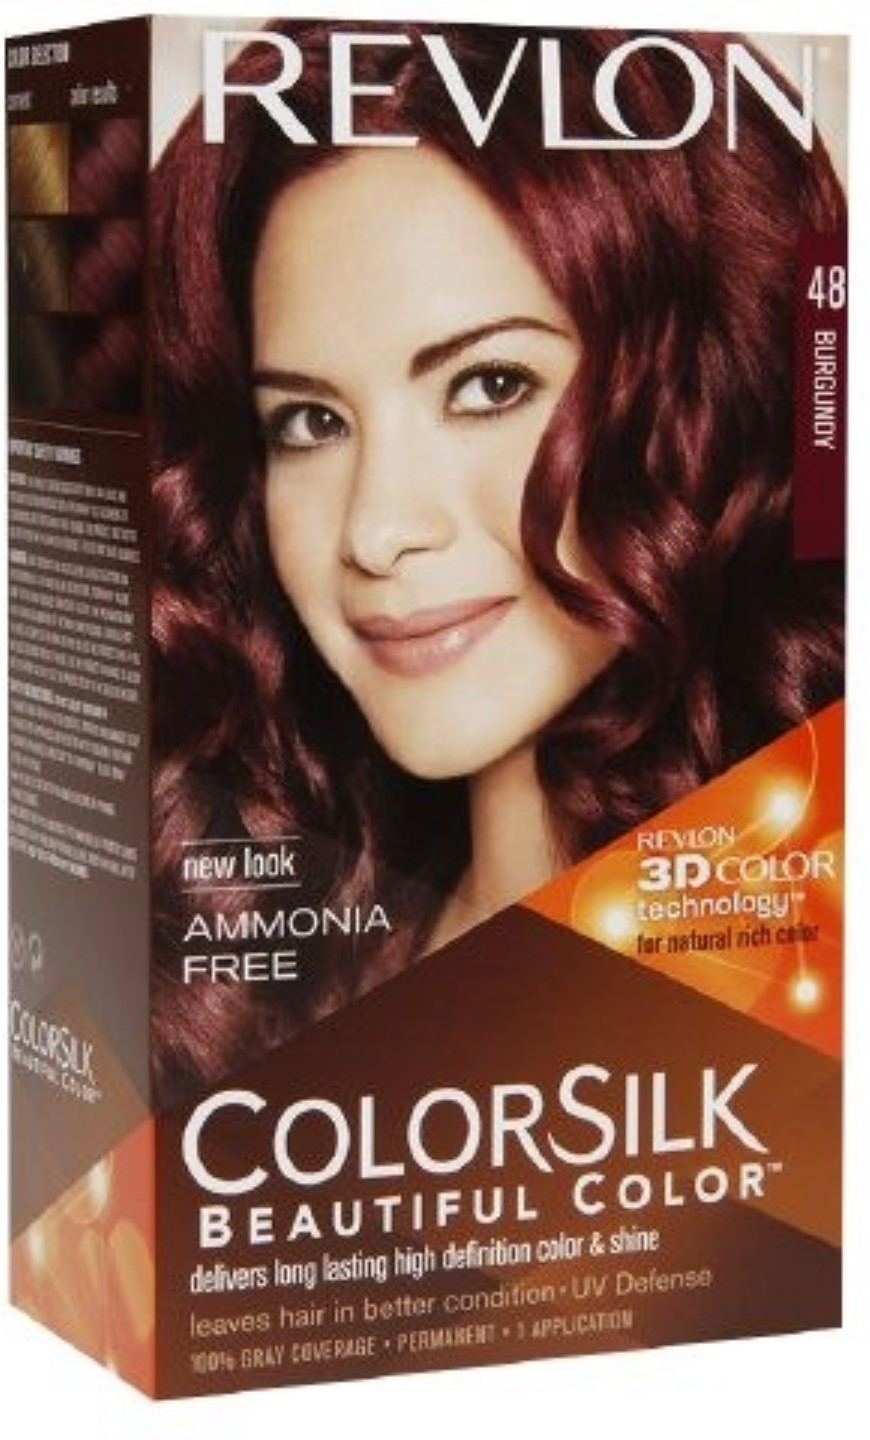 revlon colorsilk hair color 48